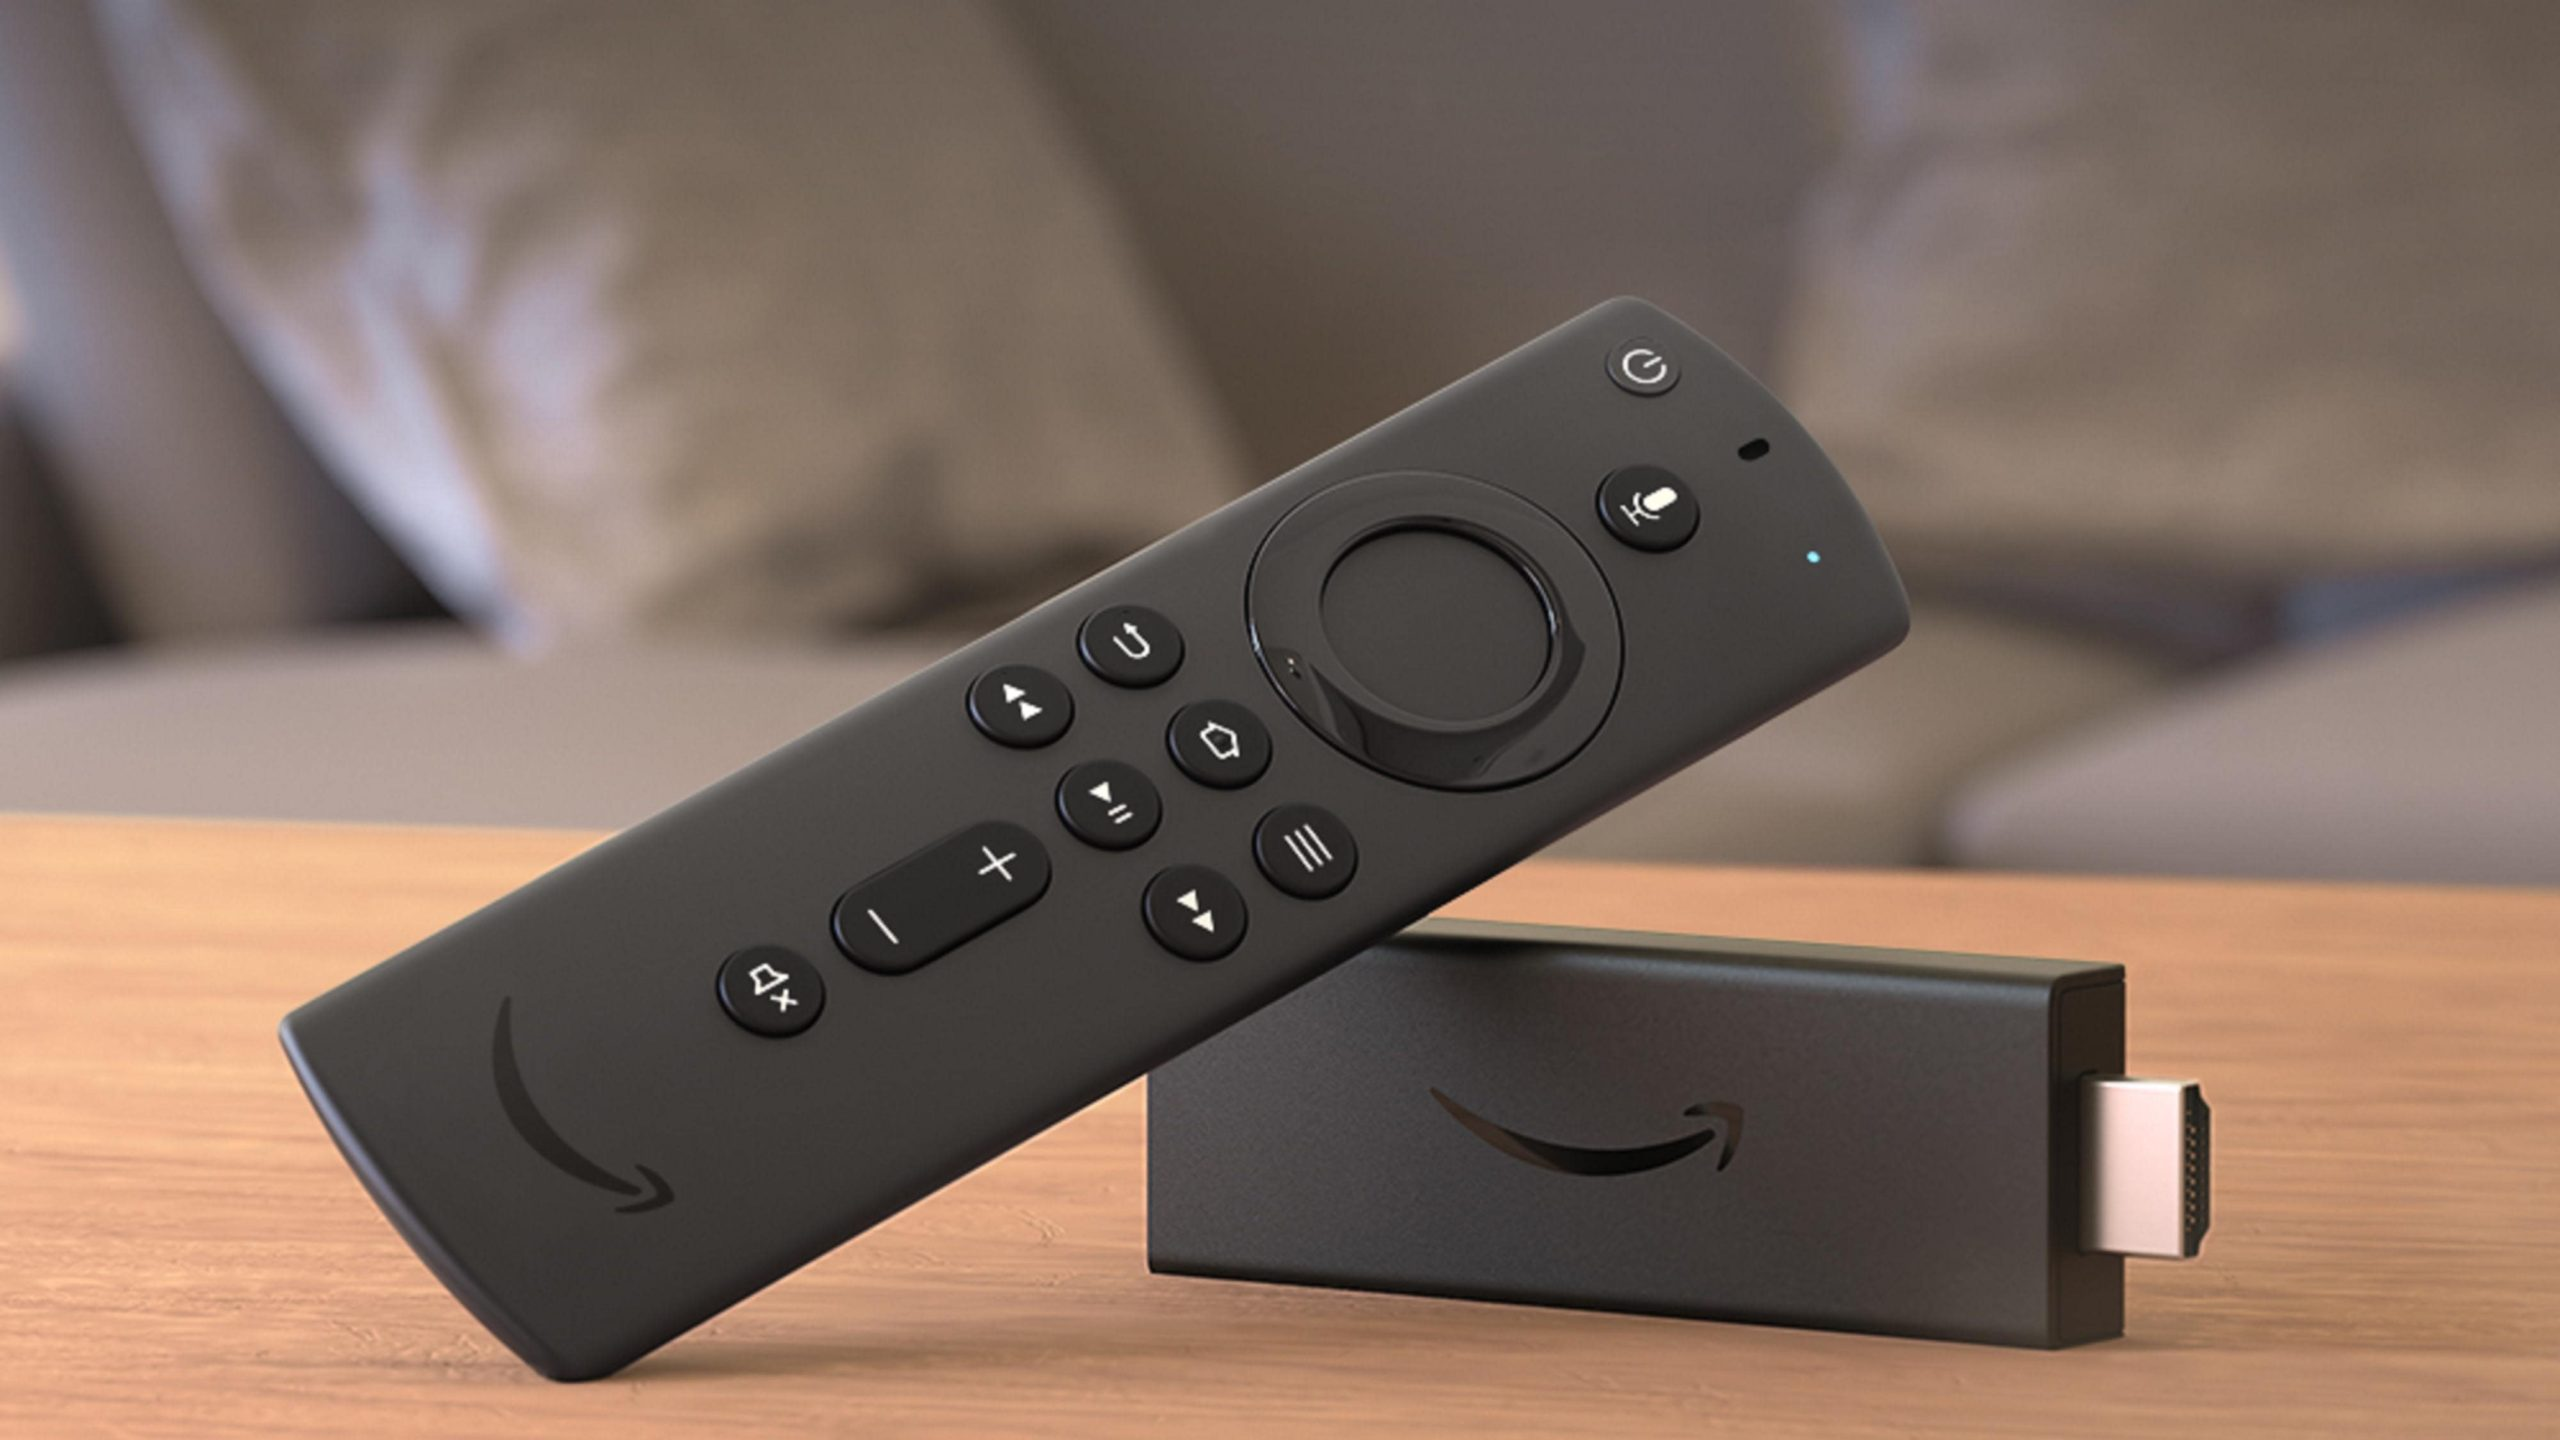 How To Use An Amazon Fire TV Stick Overseas?